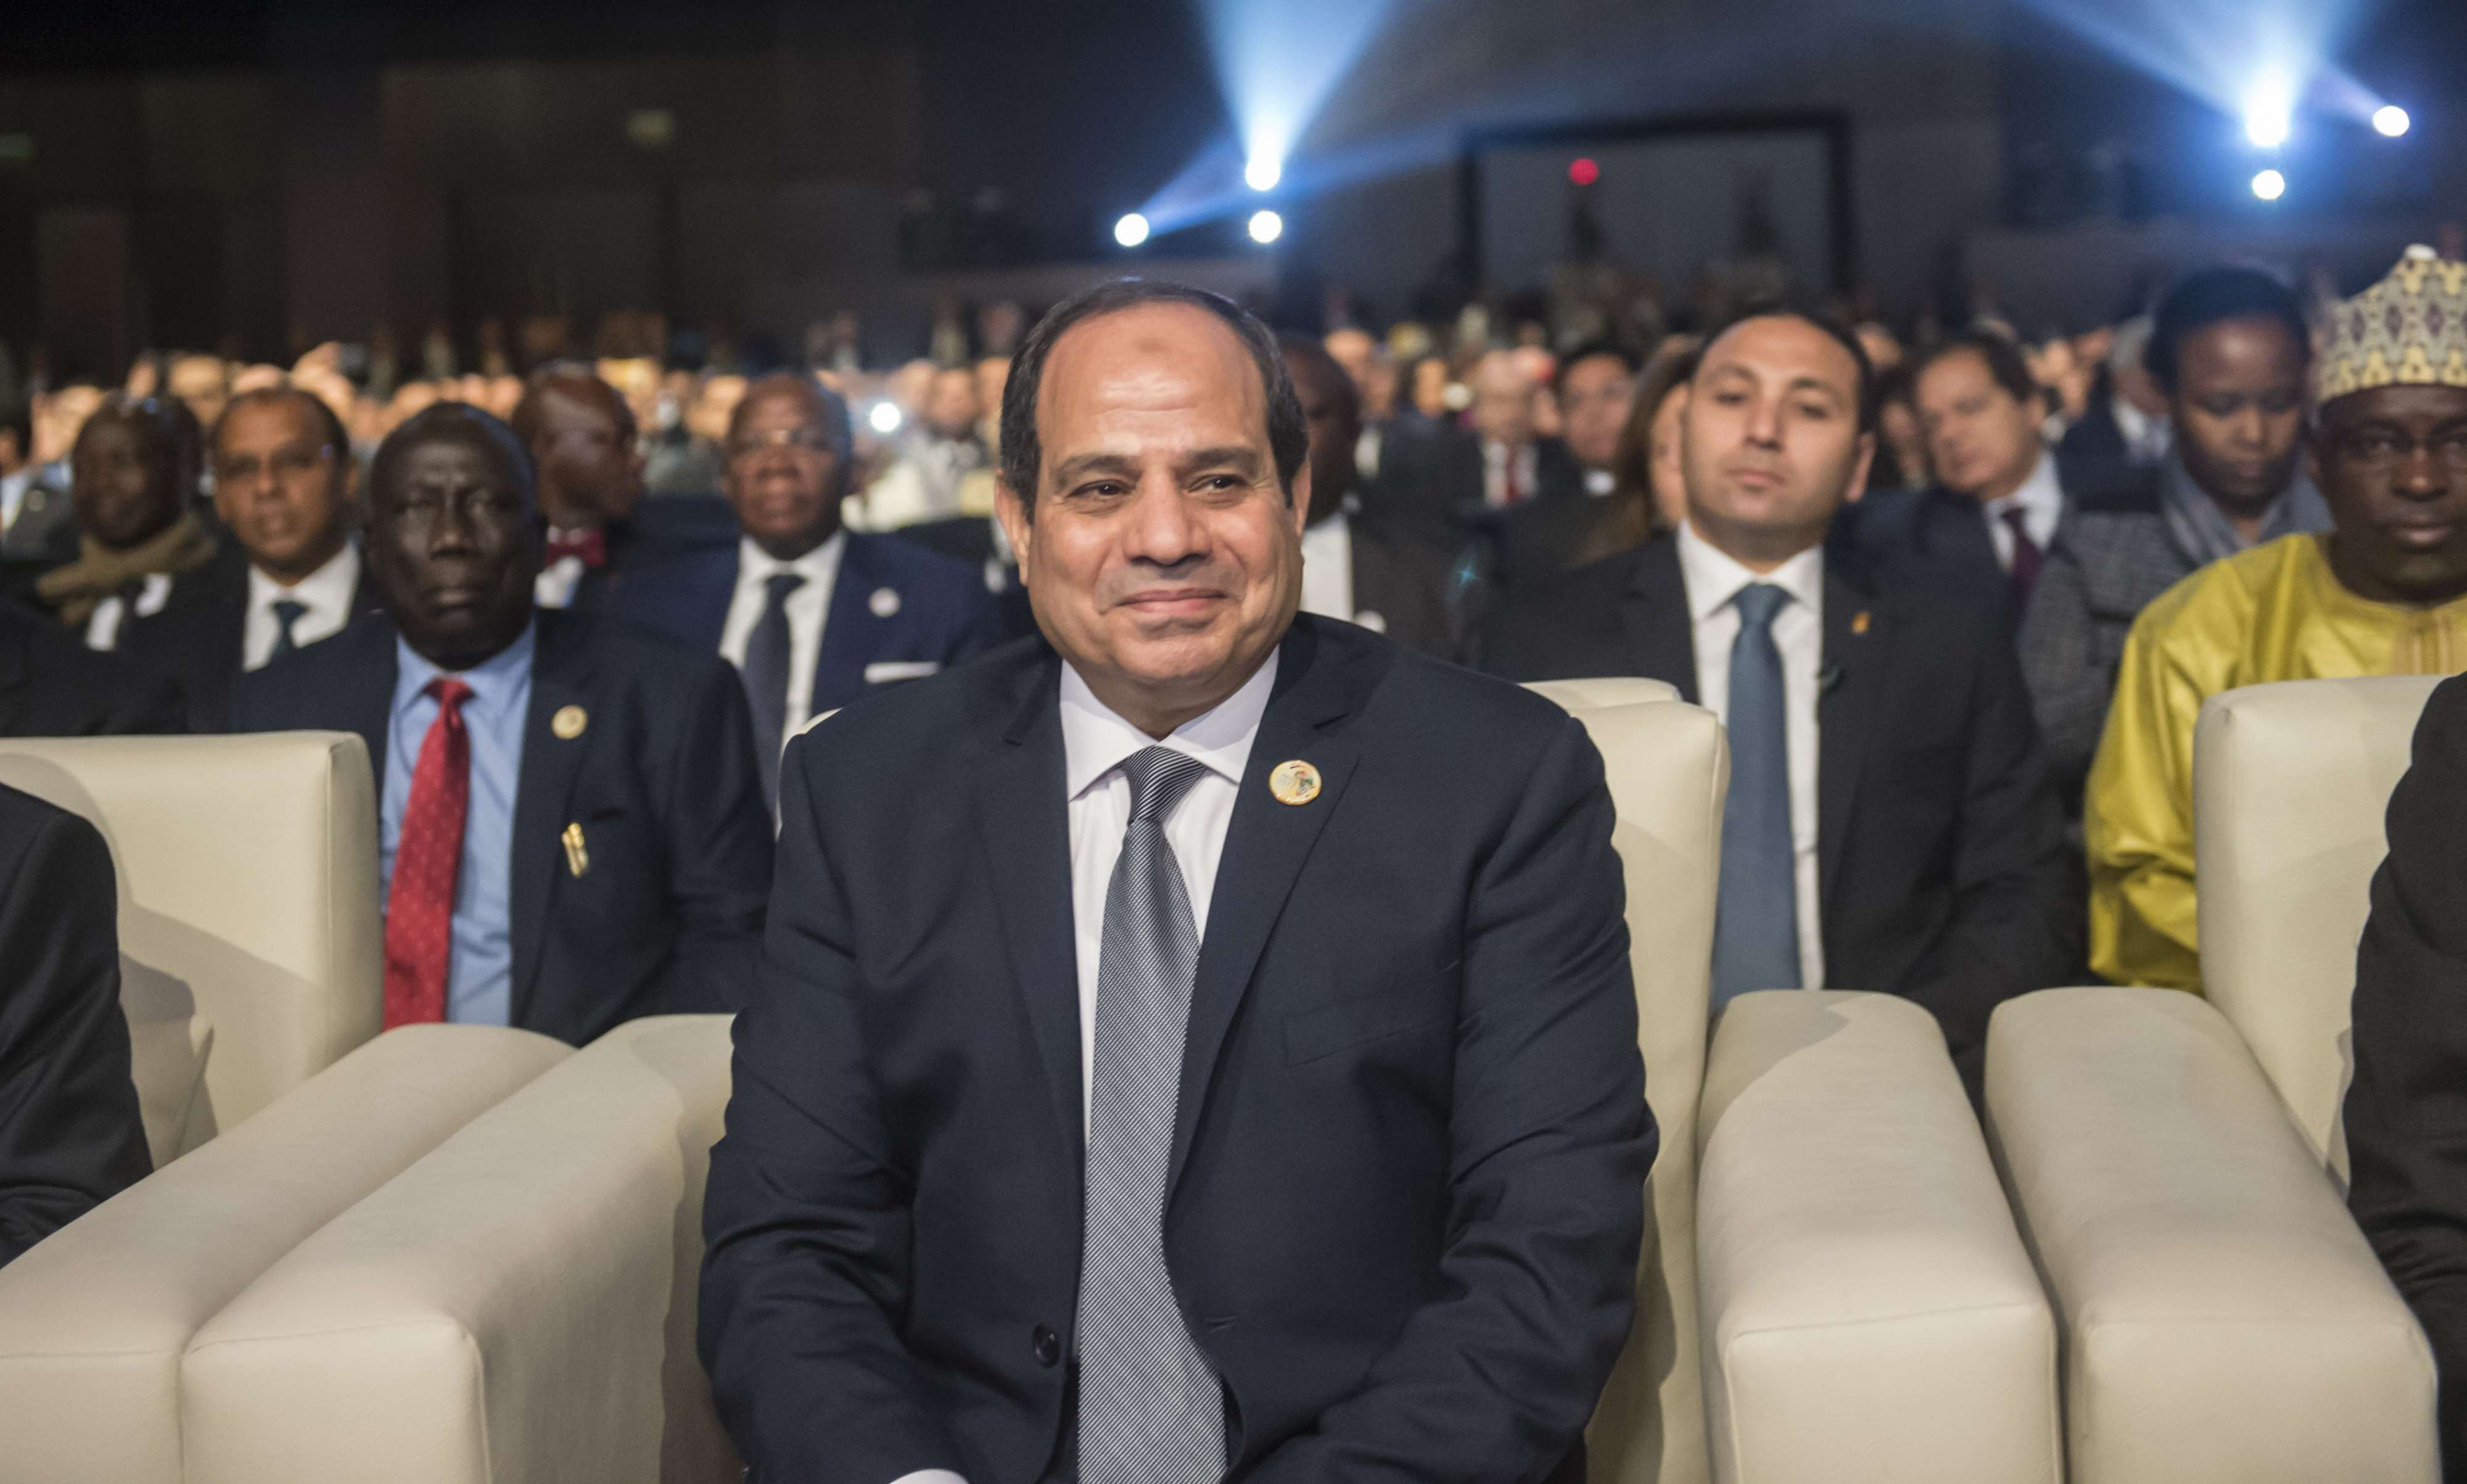 Egyptian President Abdel Fattah al-Sisi attends the opening session of the Africa 2017 Forum in the Red Sea resort of Sharm el-Sheikh on December 8, 2017.